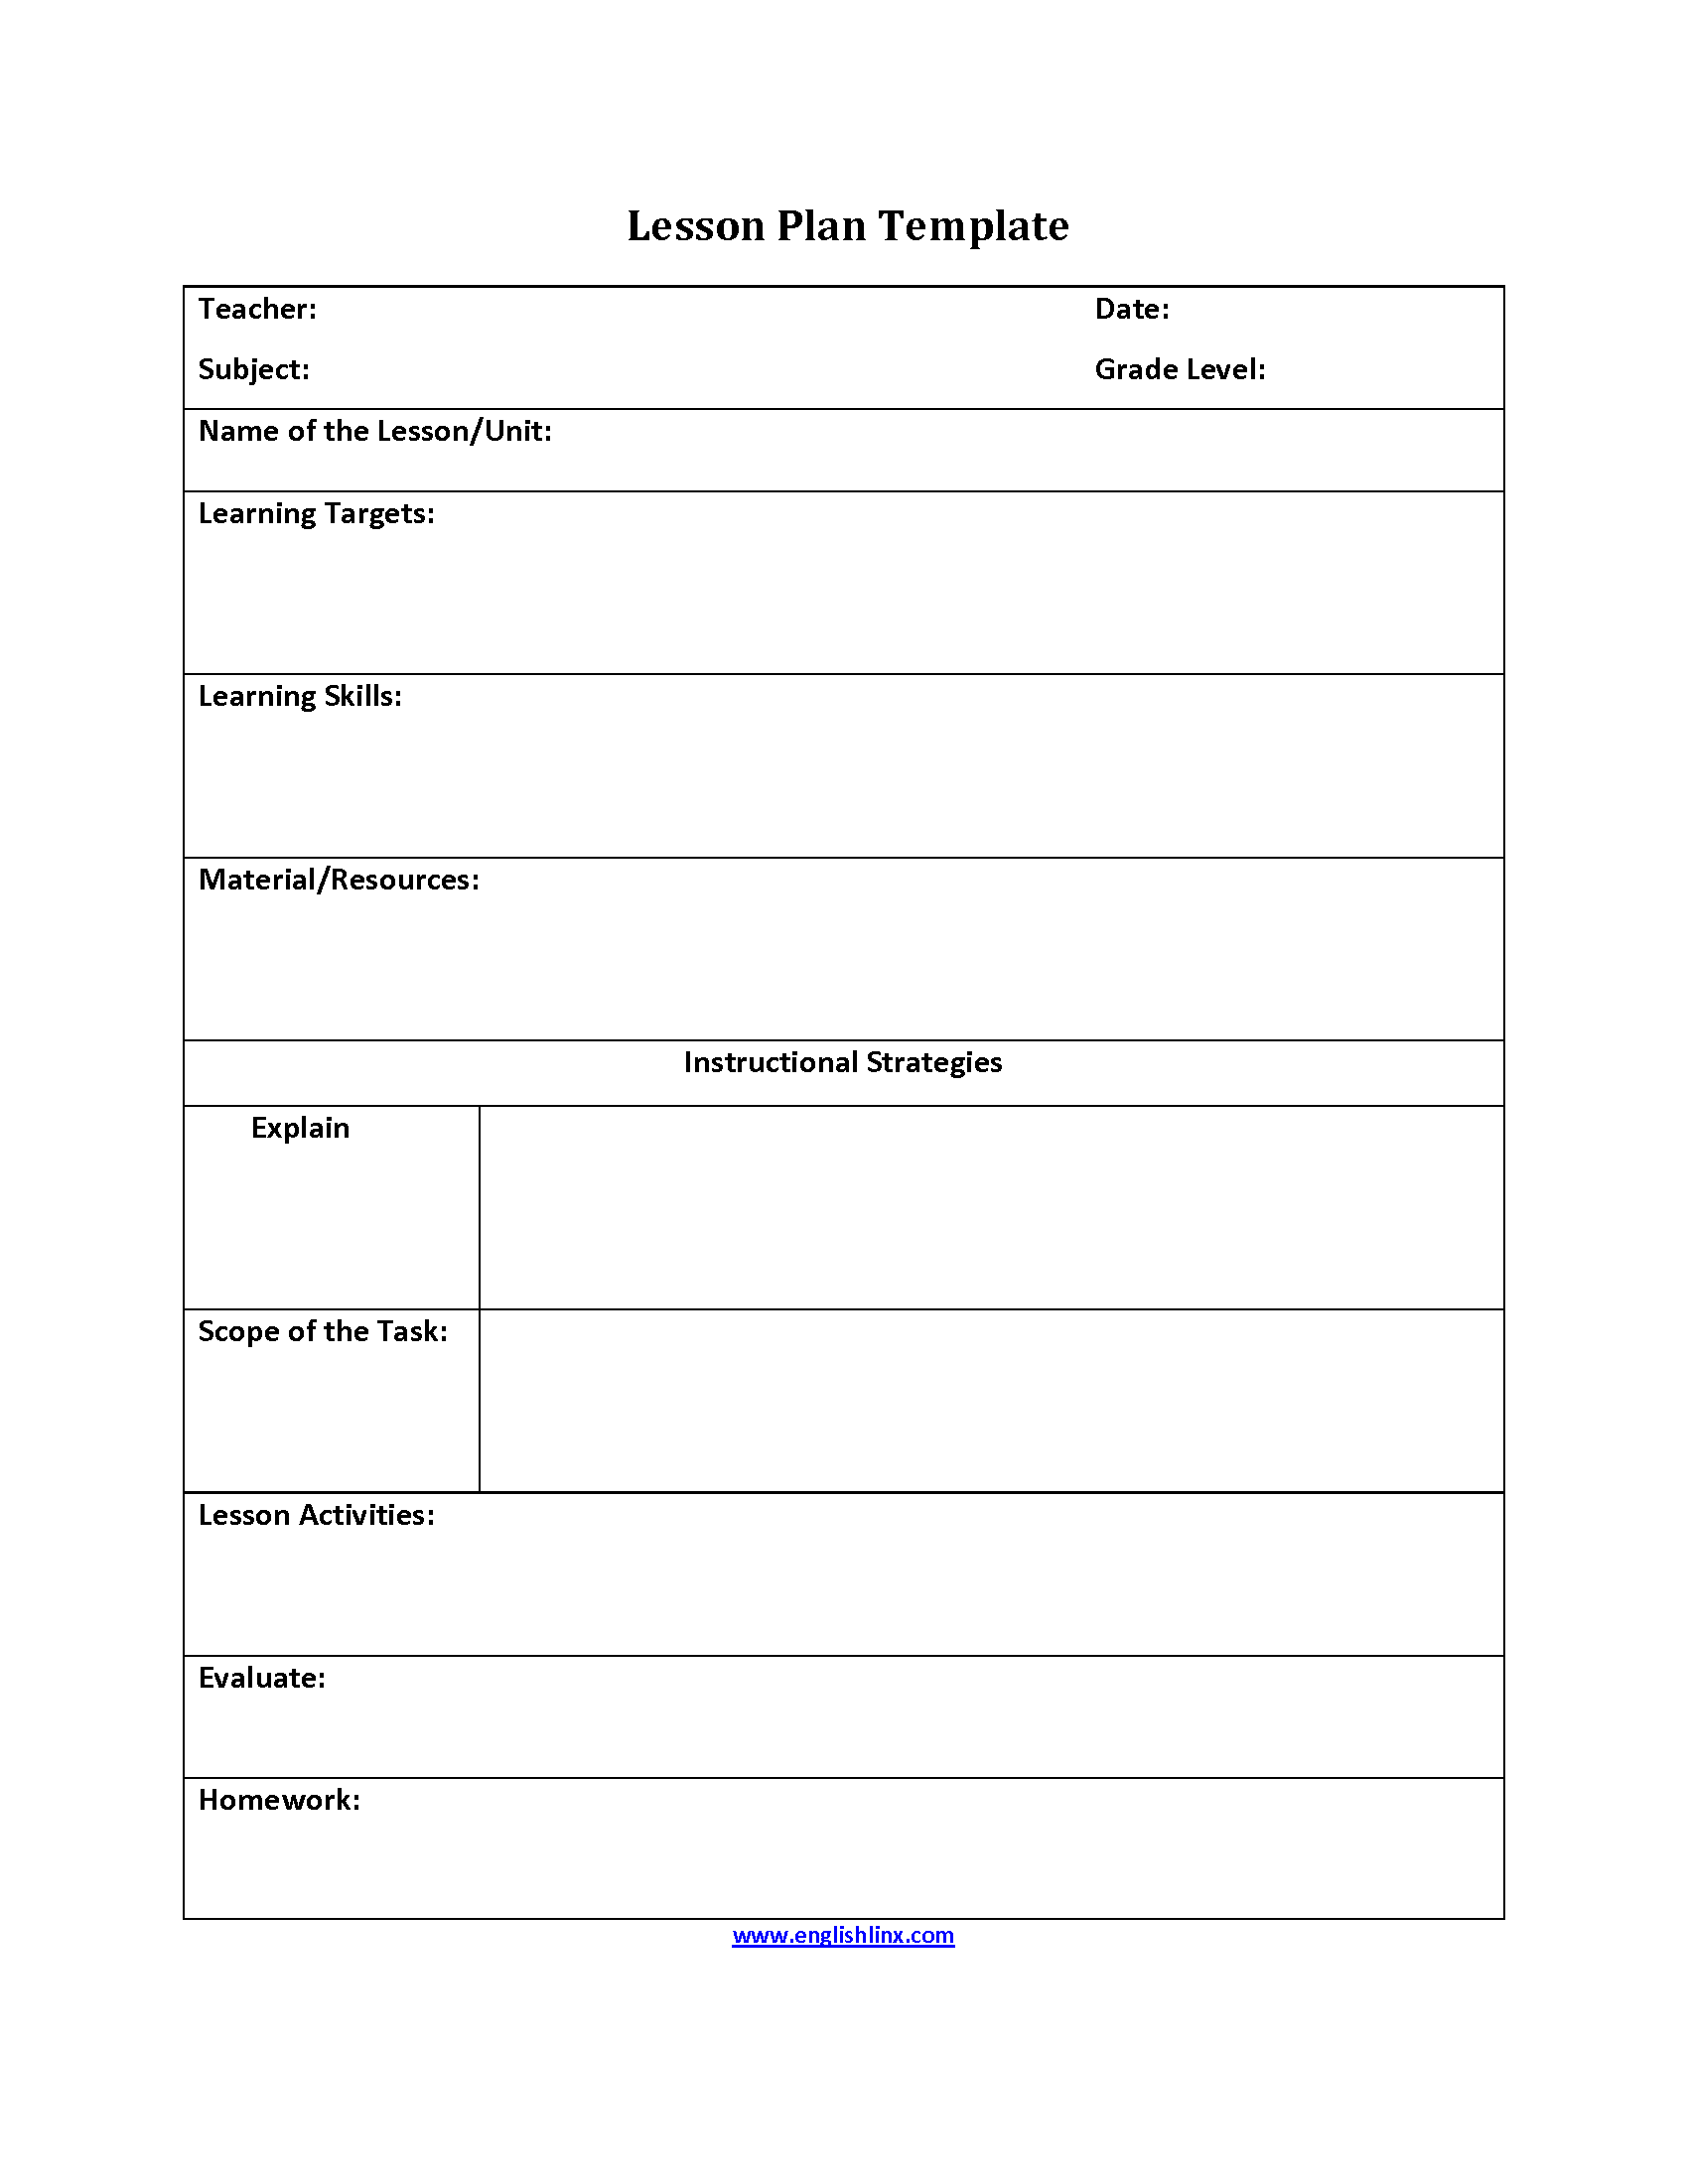 Lesson plan template for Lesson plan template for kindergarten teacher